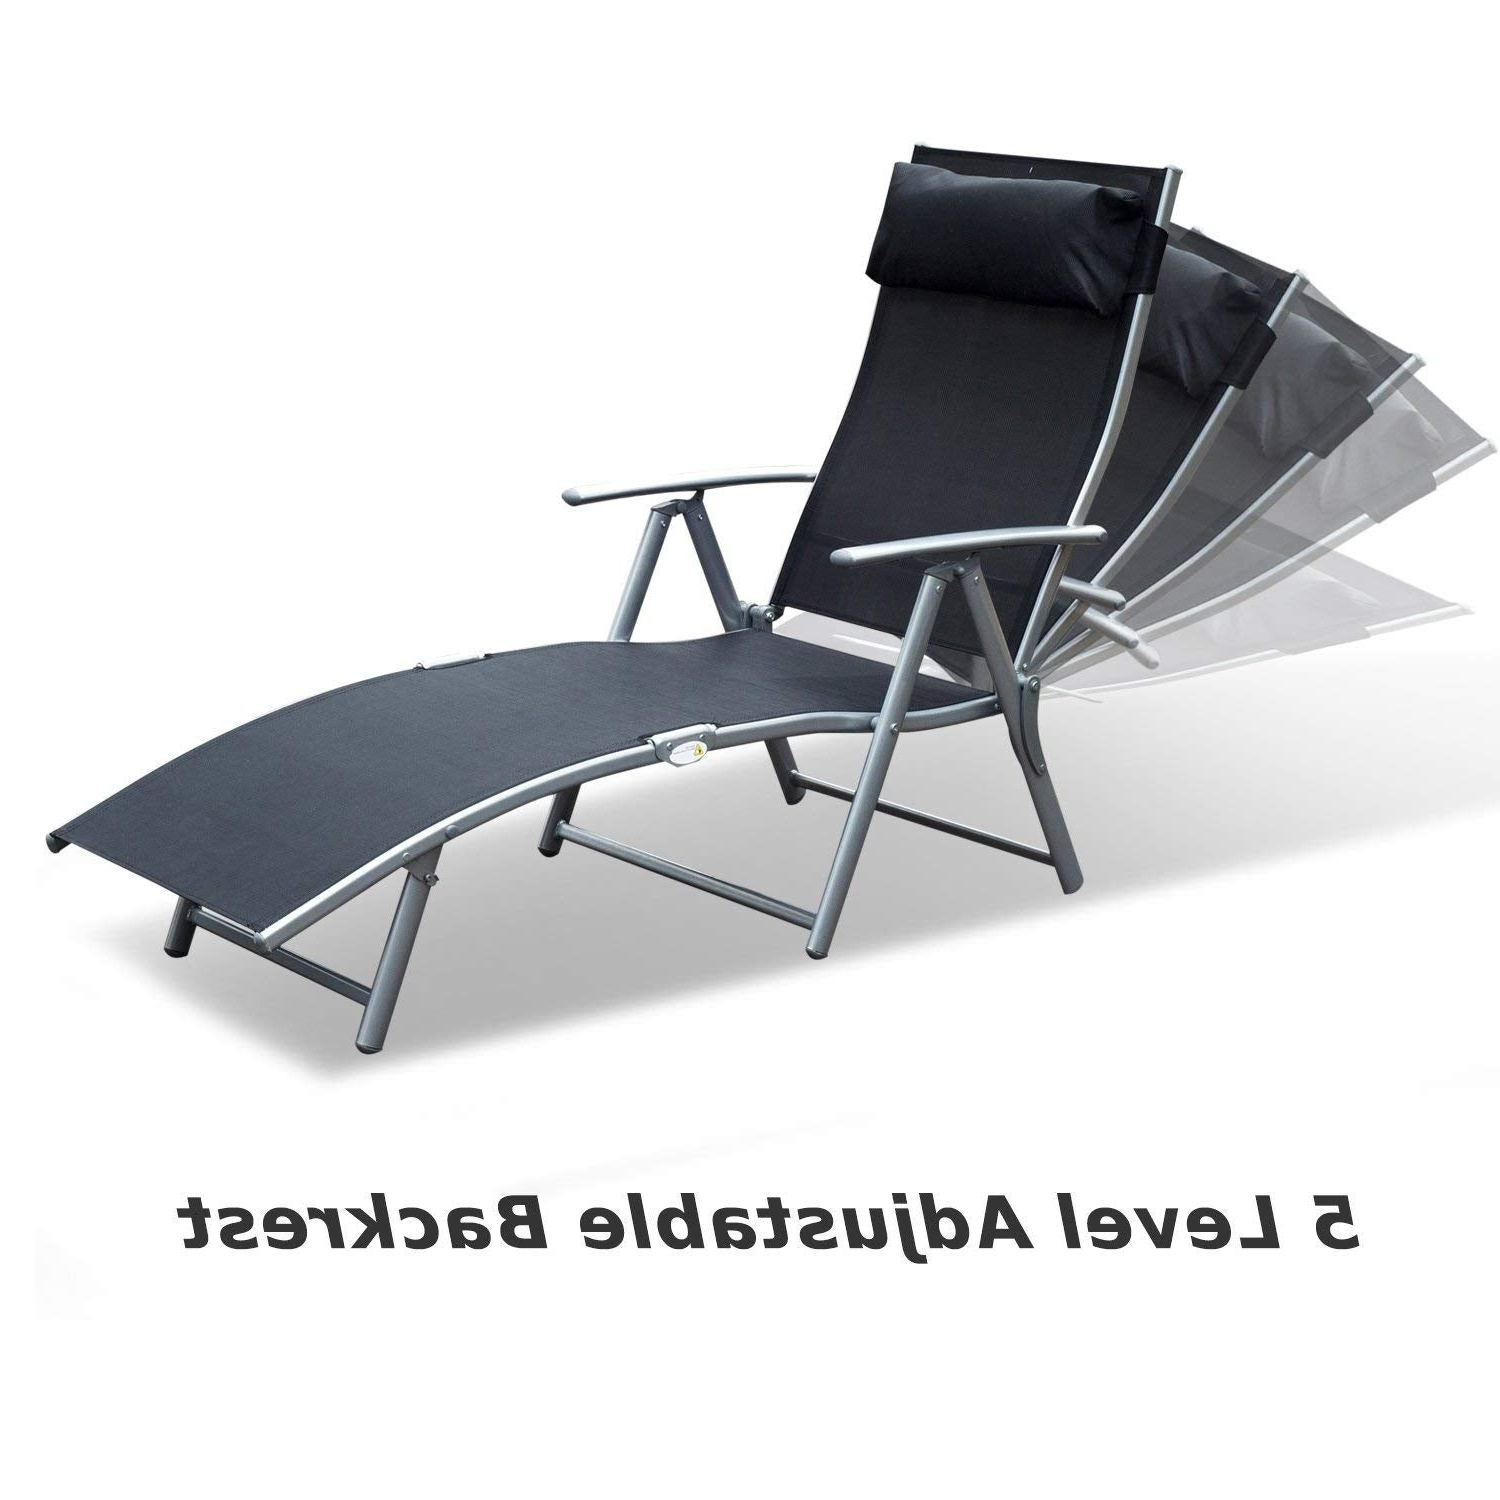 Steel Sling Fabric Outdoor Folding Chaise Lounges Within Best And Newest Outsunny Steel Sling Fabric Outdoor Folding Chaise Lounge Chair Recliner –  Black (View 23 of 25)